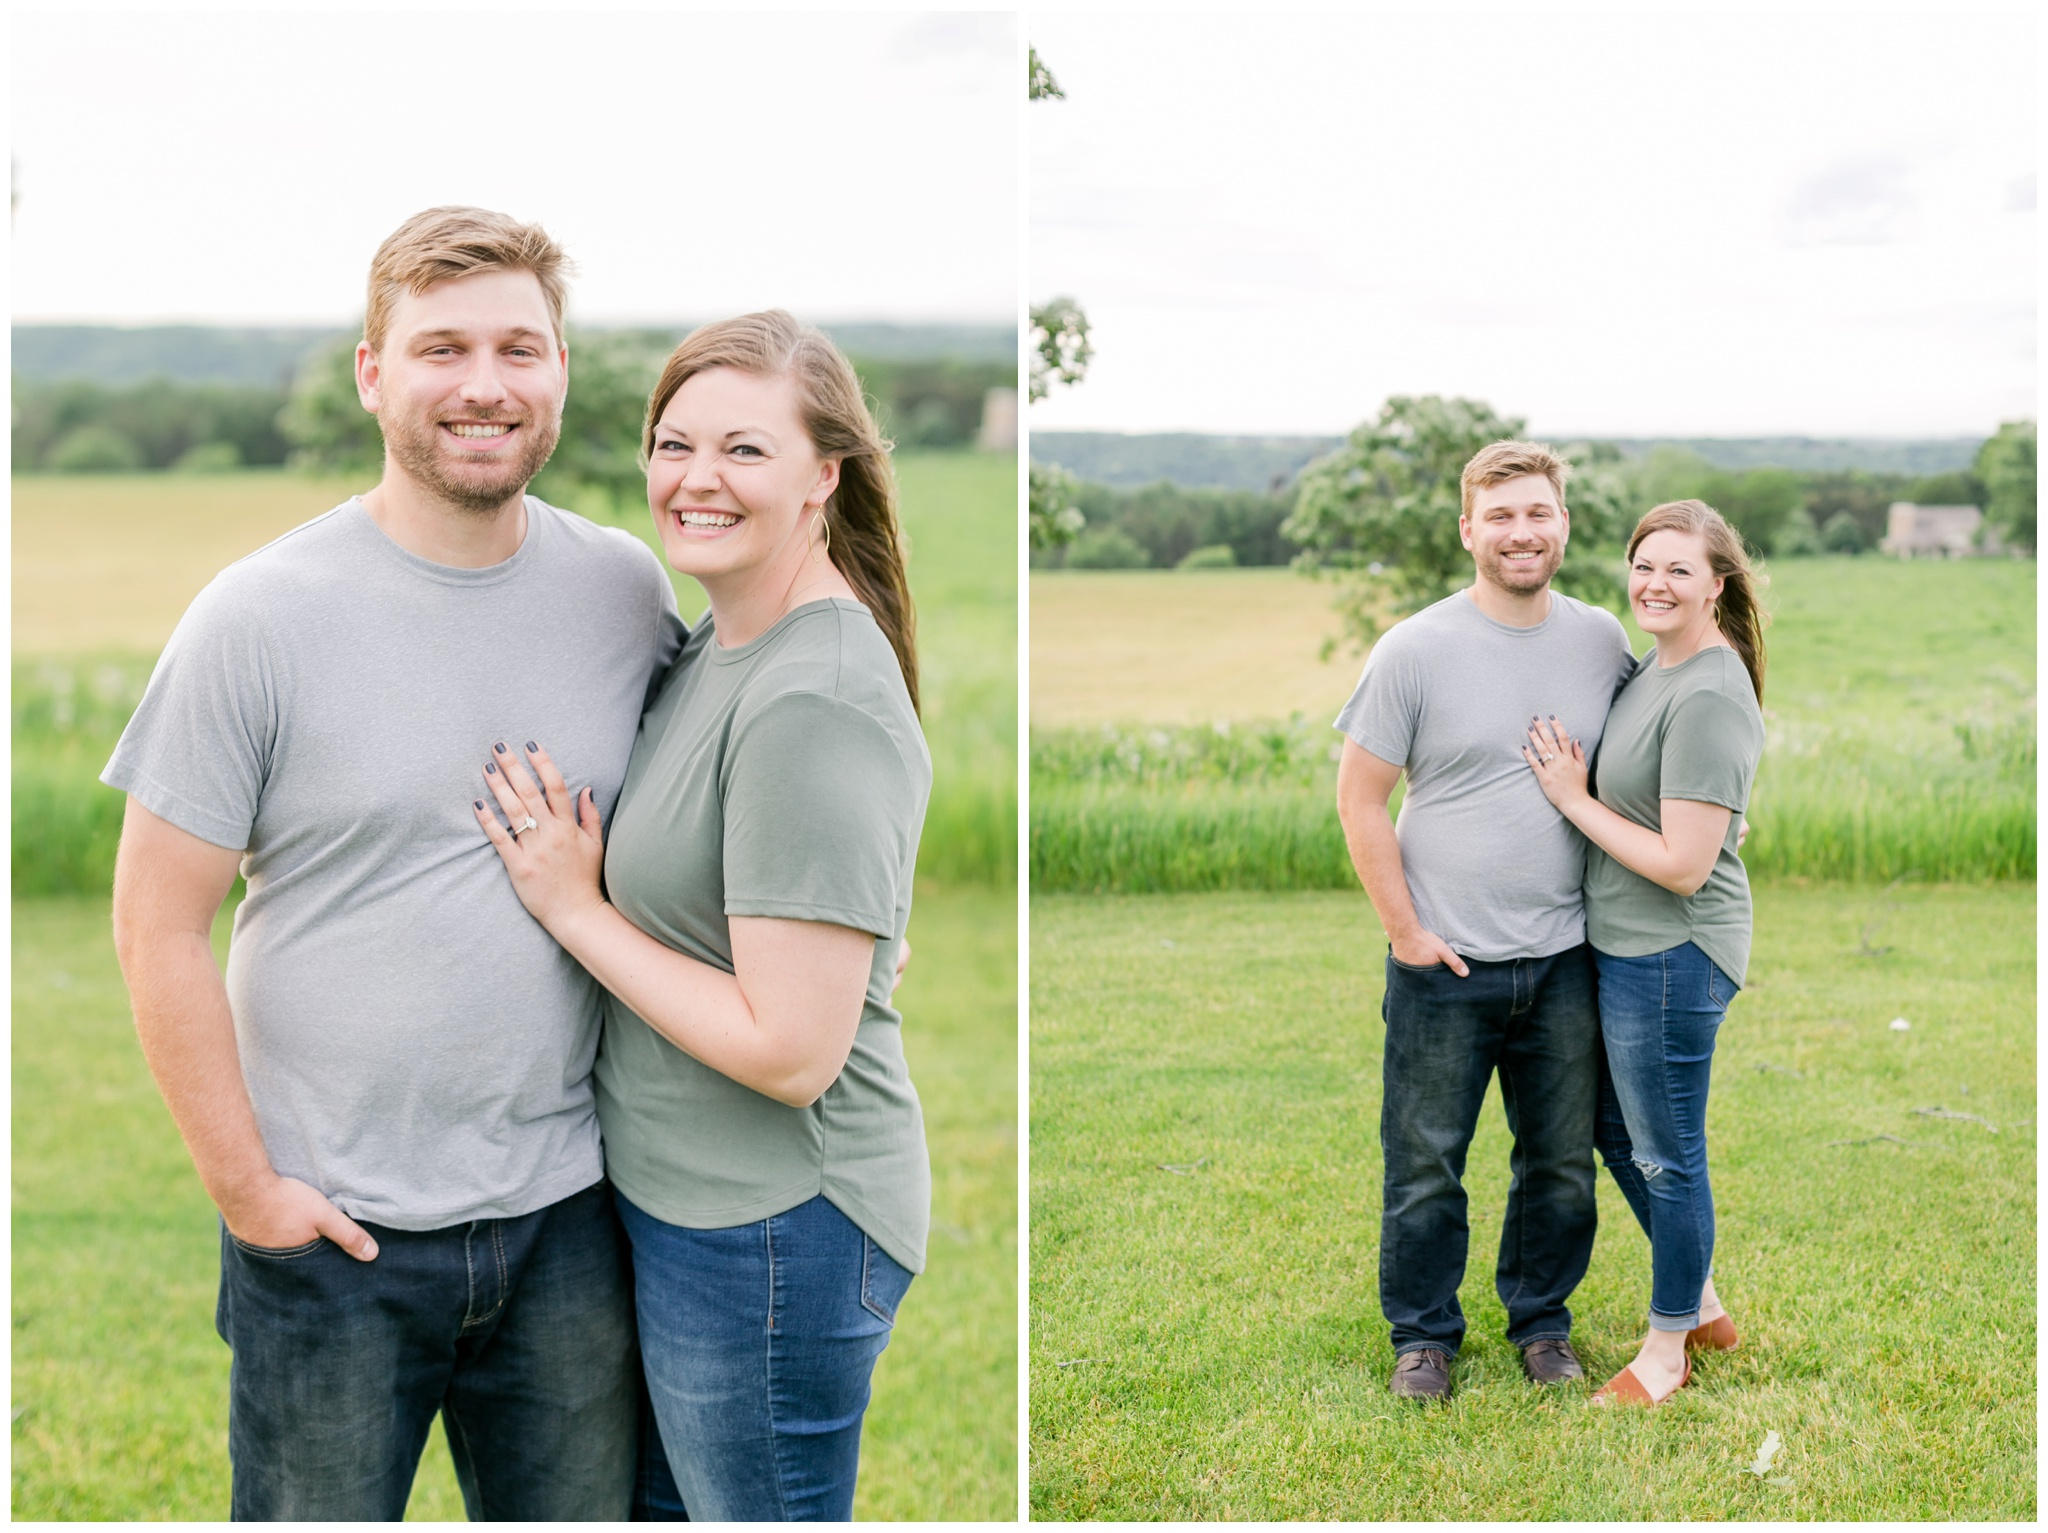 pope_farm_conservancy_engagement_session_madison_wisconsin_engagement_photographers_4141.jpg